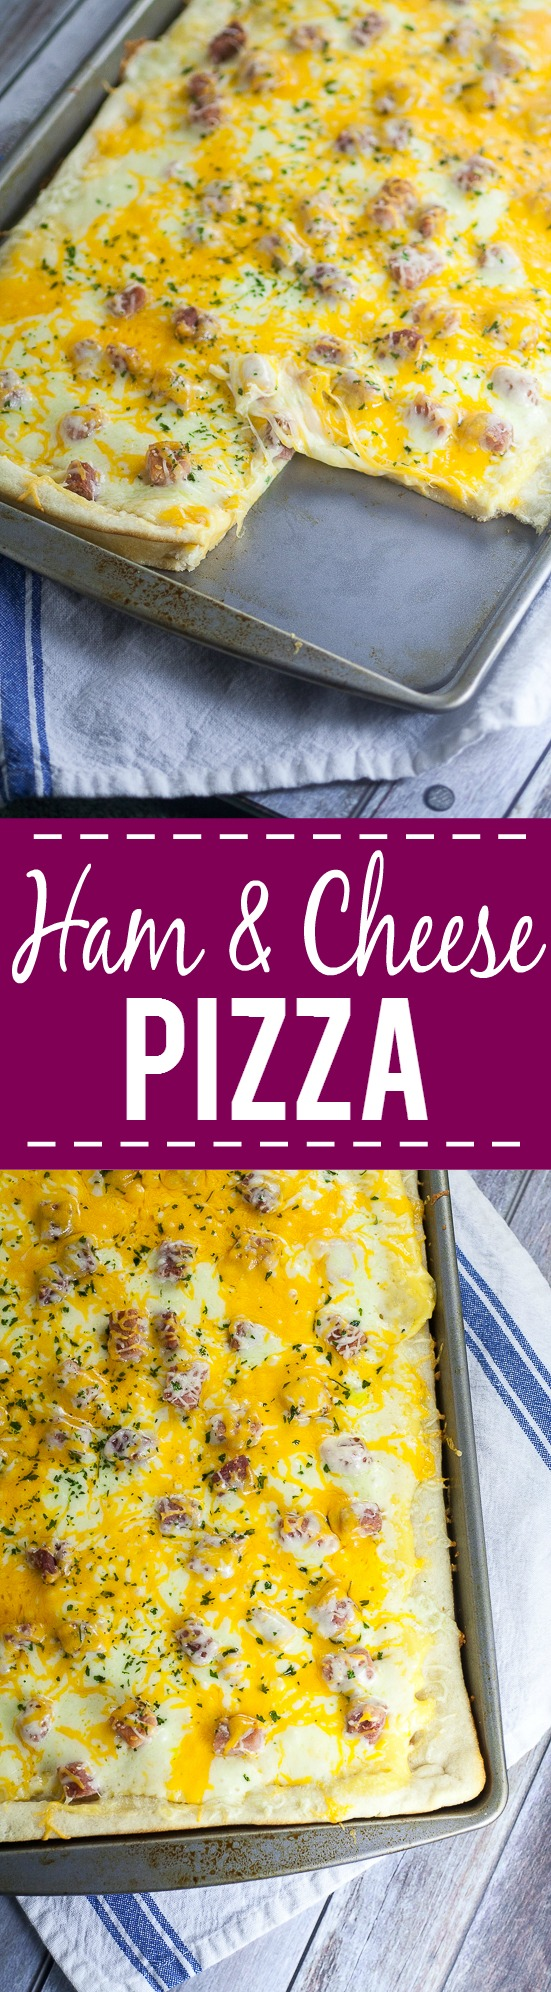 Ham and Cheese Pizza Recipe -Ham and cheese is a classic combination that everyone loves, especially in this creamy, cheesy Ham and Cheese Pizza recipe that makes a yummy and easy family dinner! Make this quick and easy dinner recipe in less than 30 minutes!